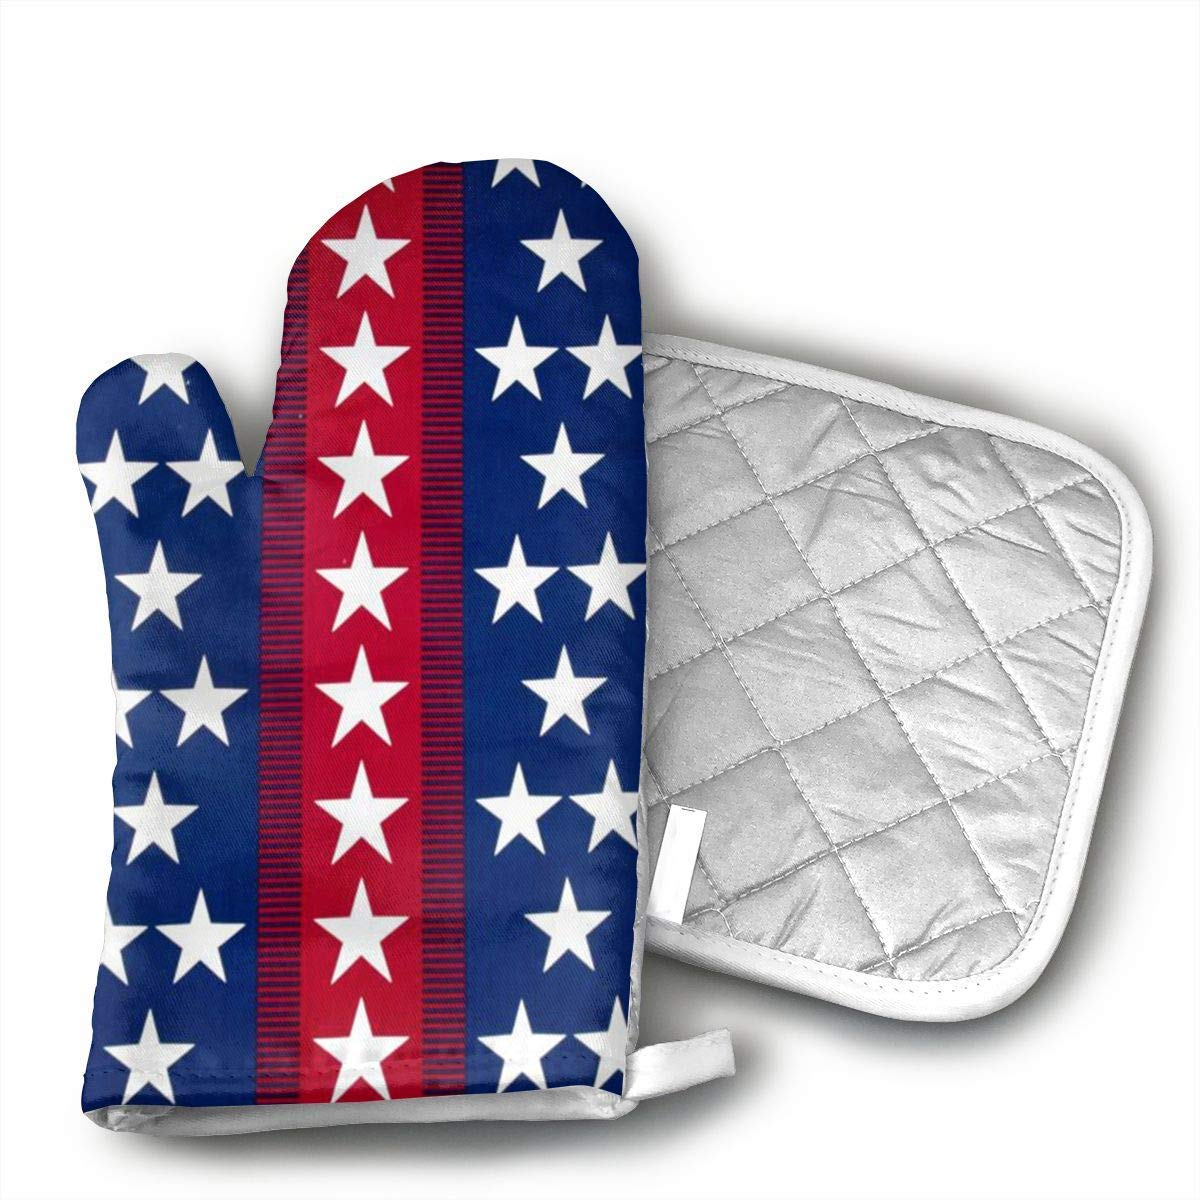 VANKINE Blue Stars Oven Mitts Cooking Gloves 480 F Heat Resistant, Non Slip Grip Pot Holders for Kitchen Oven BBQ Grill and Fire Pits for Cooking Baking